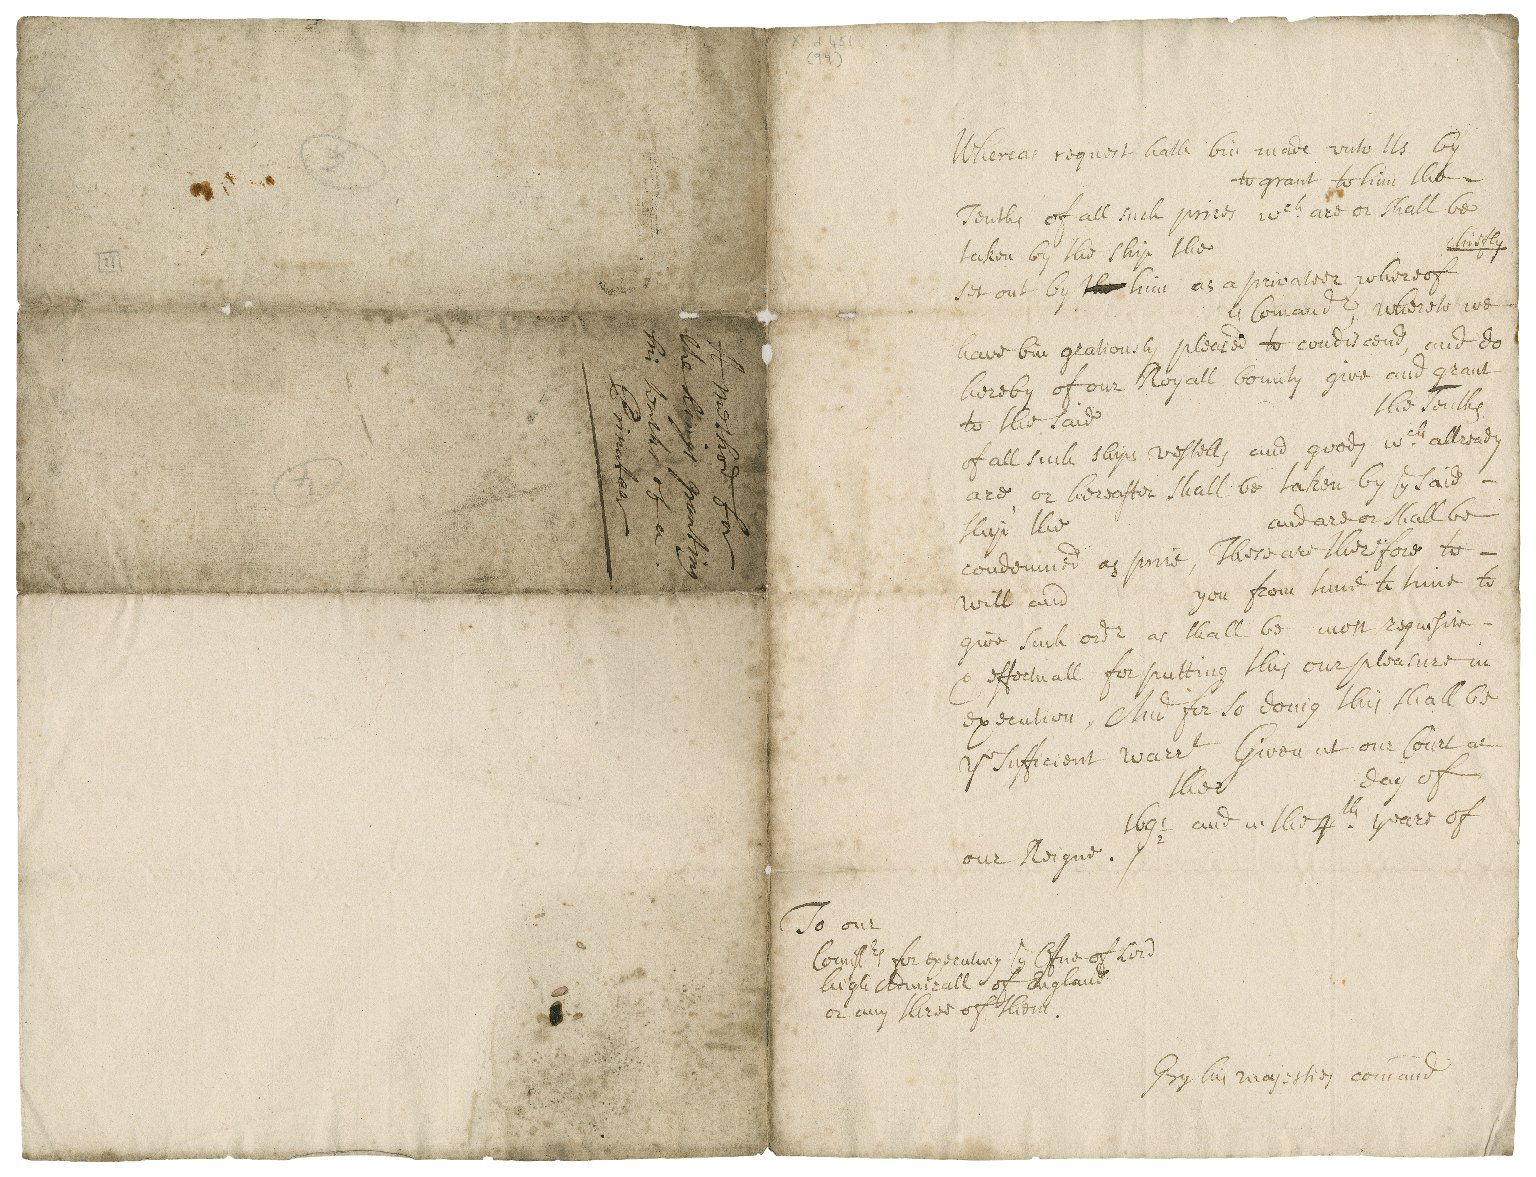 Draft form for the King's granting his tenths of a privateer to the person setting out the ship as a privateer, addressed to the Commissioners for executing the office of Lord High Admiral of England